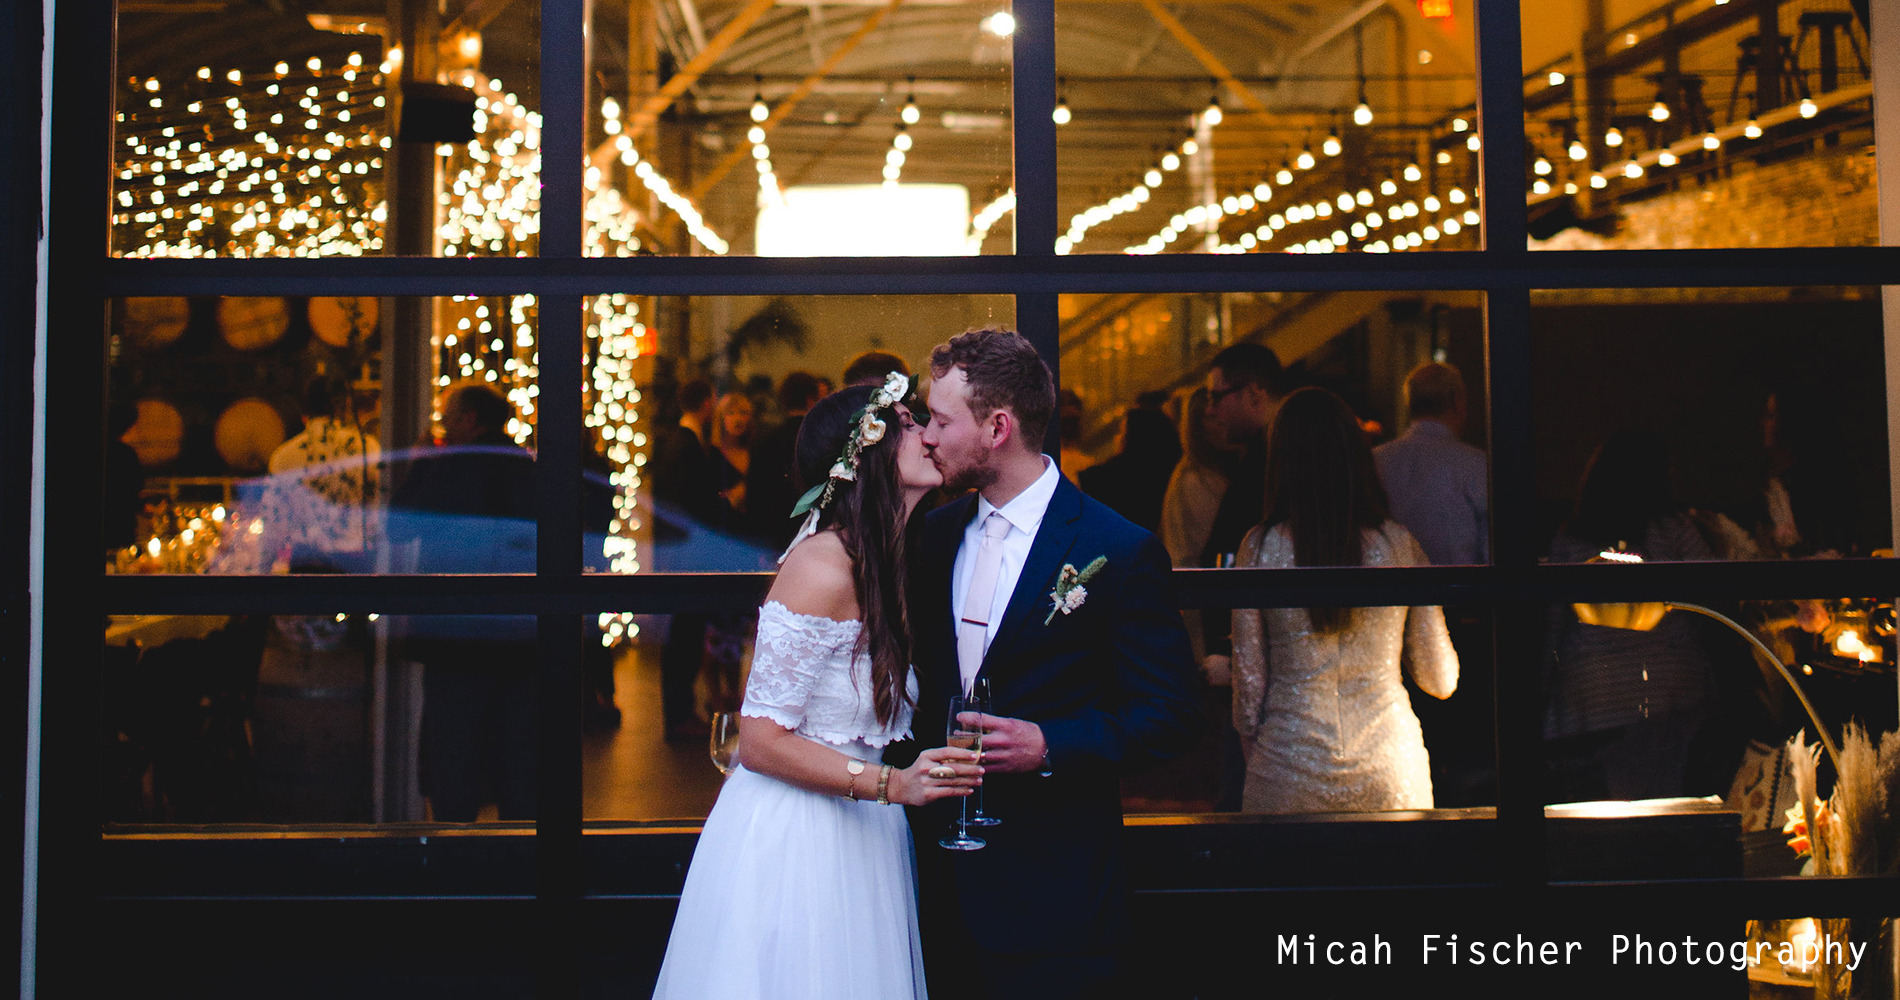 Micah_Fischer_Photography_Weddings_Wedding_Events_Design_Wedding_Cake_Corporate_Business_Meeting_Sales_Training_Event_Marketing_Oregon_Portland_Adventure_Winery_Taproom_Event-Space_Dinner_Party_Restaurant